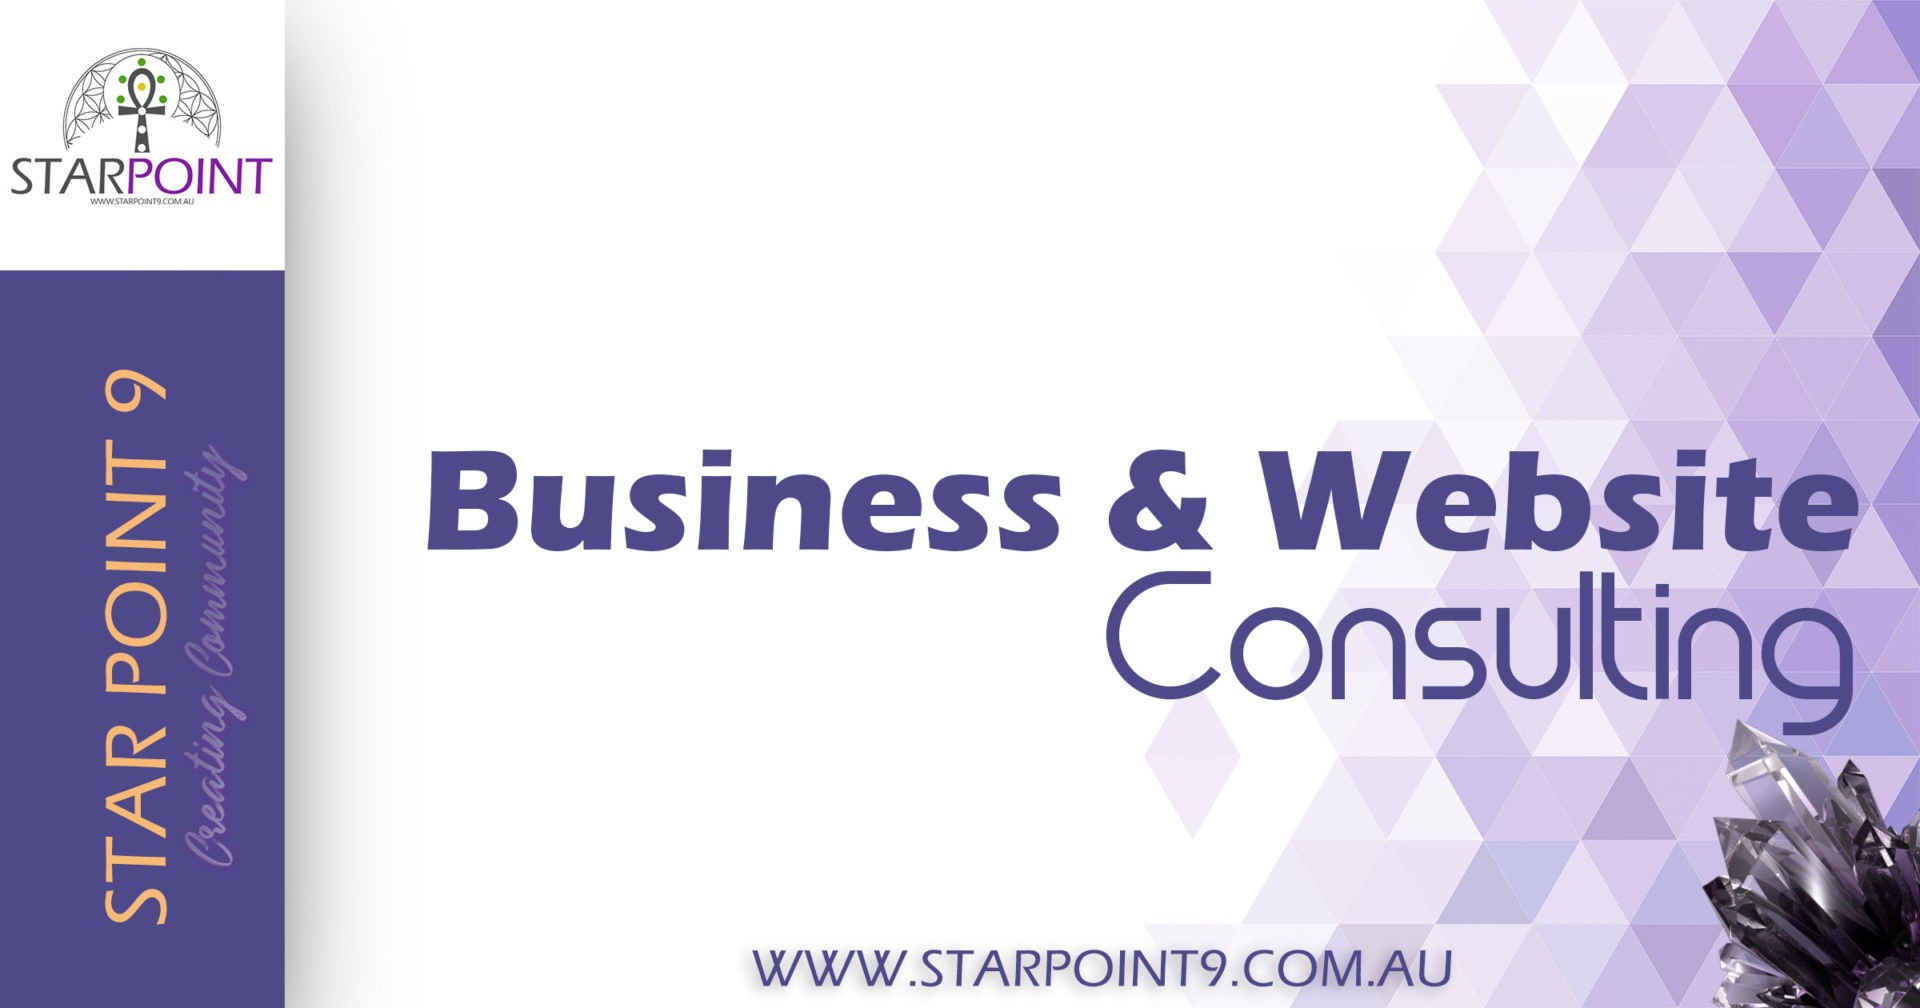 Business & Website Consulting with Steven North & Star Point 9